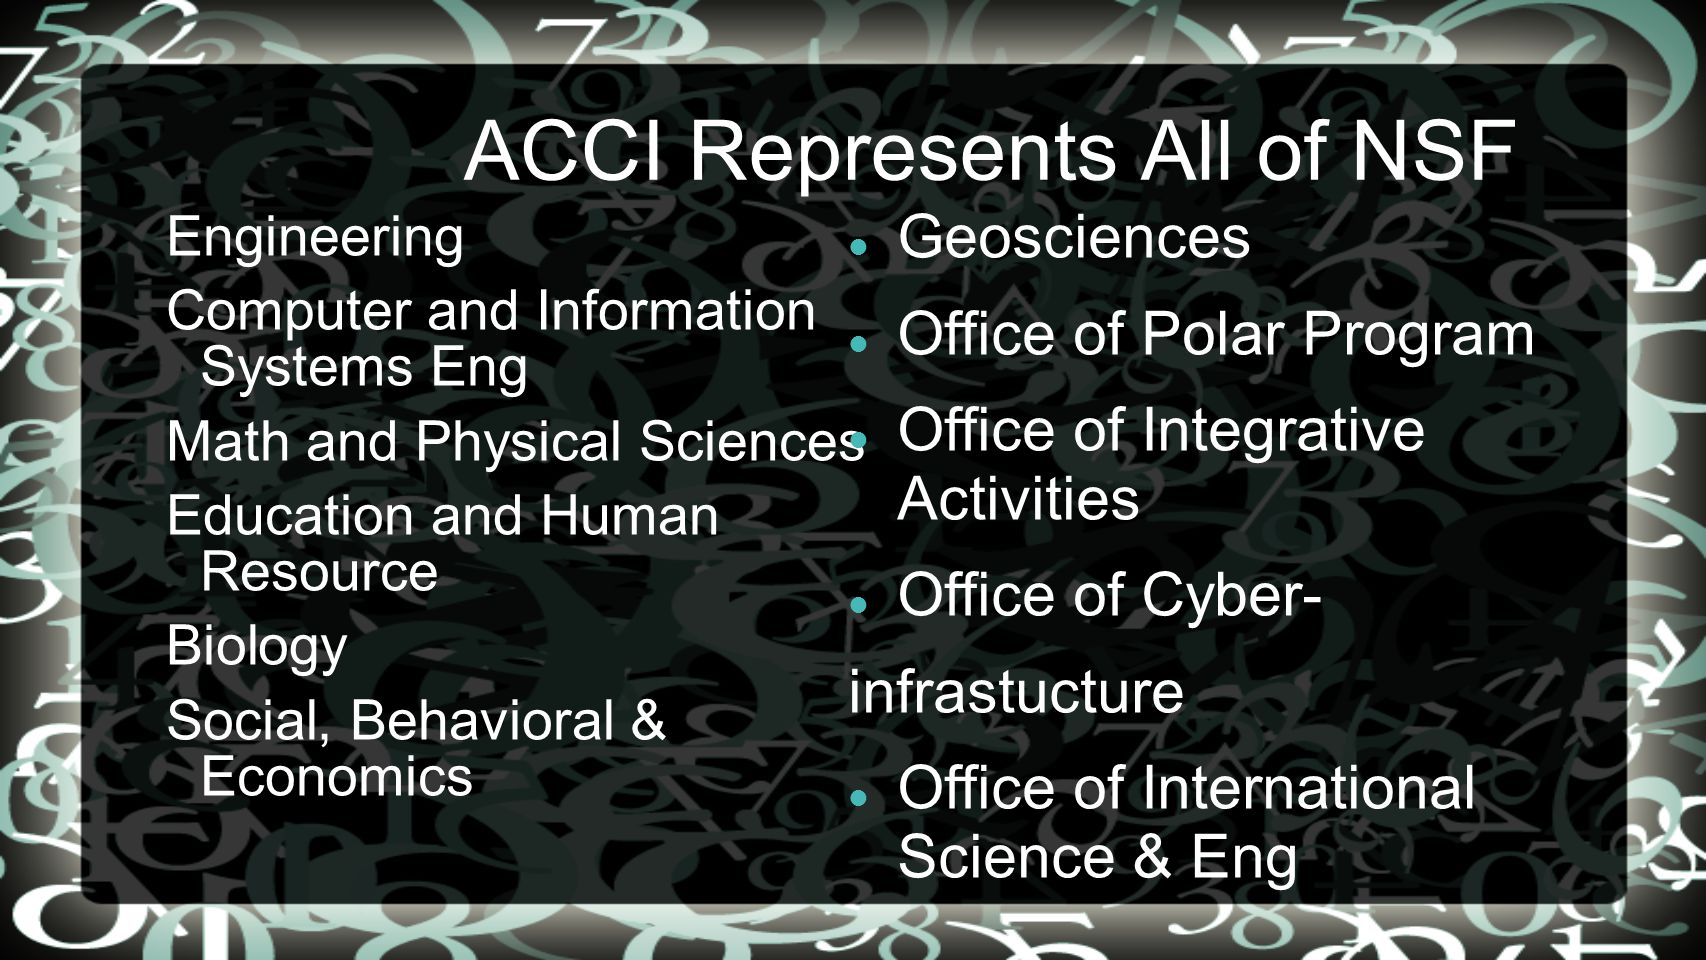 ACCI Represents All of NSF Engineering Computer and Information Systems Eng Math and Physical Sciences Education and Human Resource Biology Social, Behavioral & Economics Geosciences Office of Polar Program Office of Integrative Activities Office of Cyber- infrastucture Office of International Science & Eng